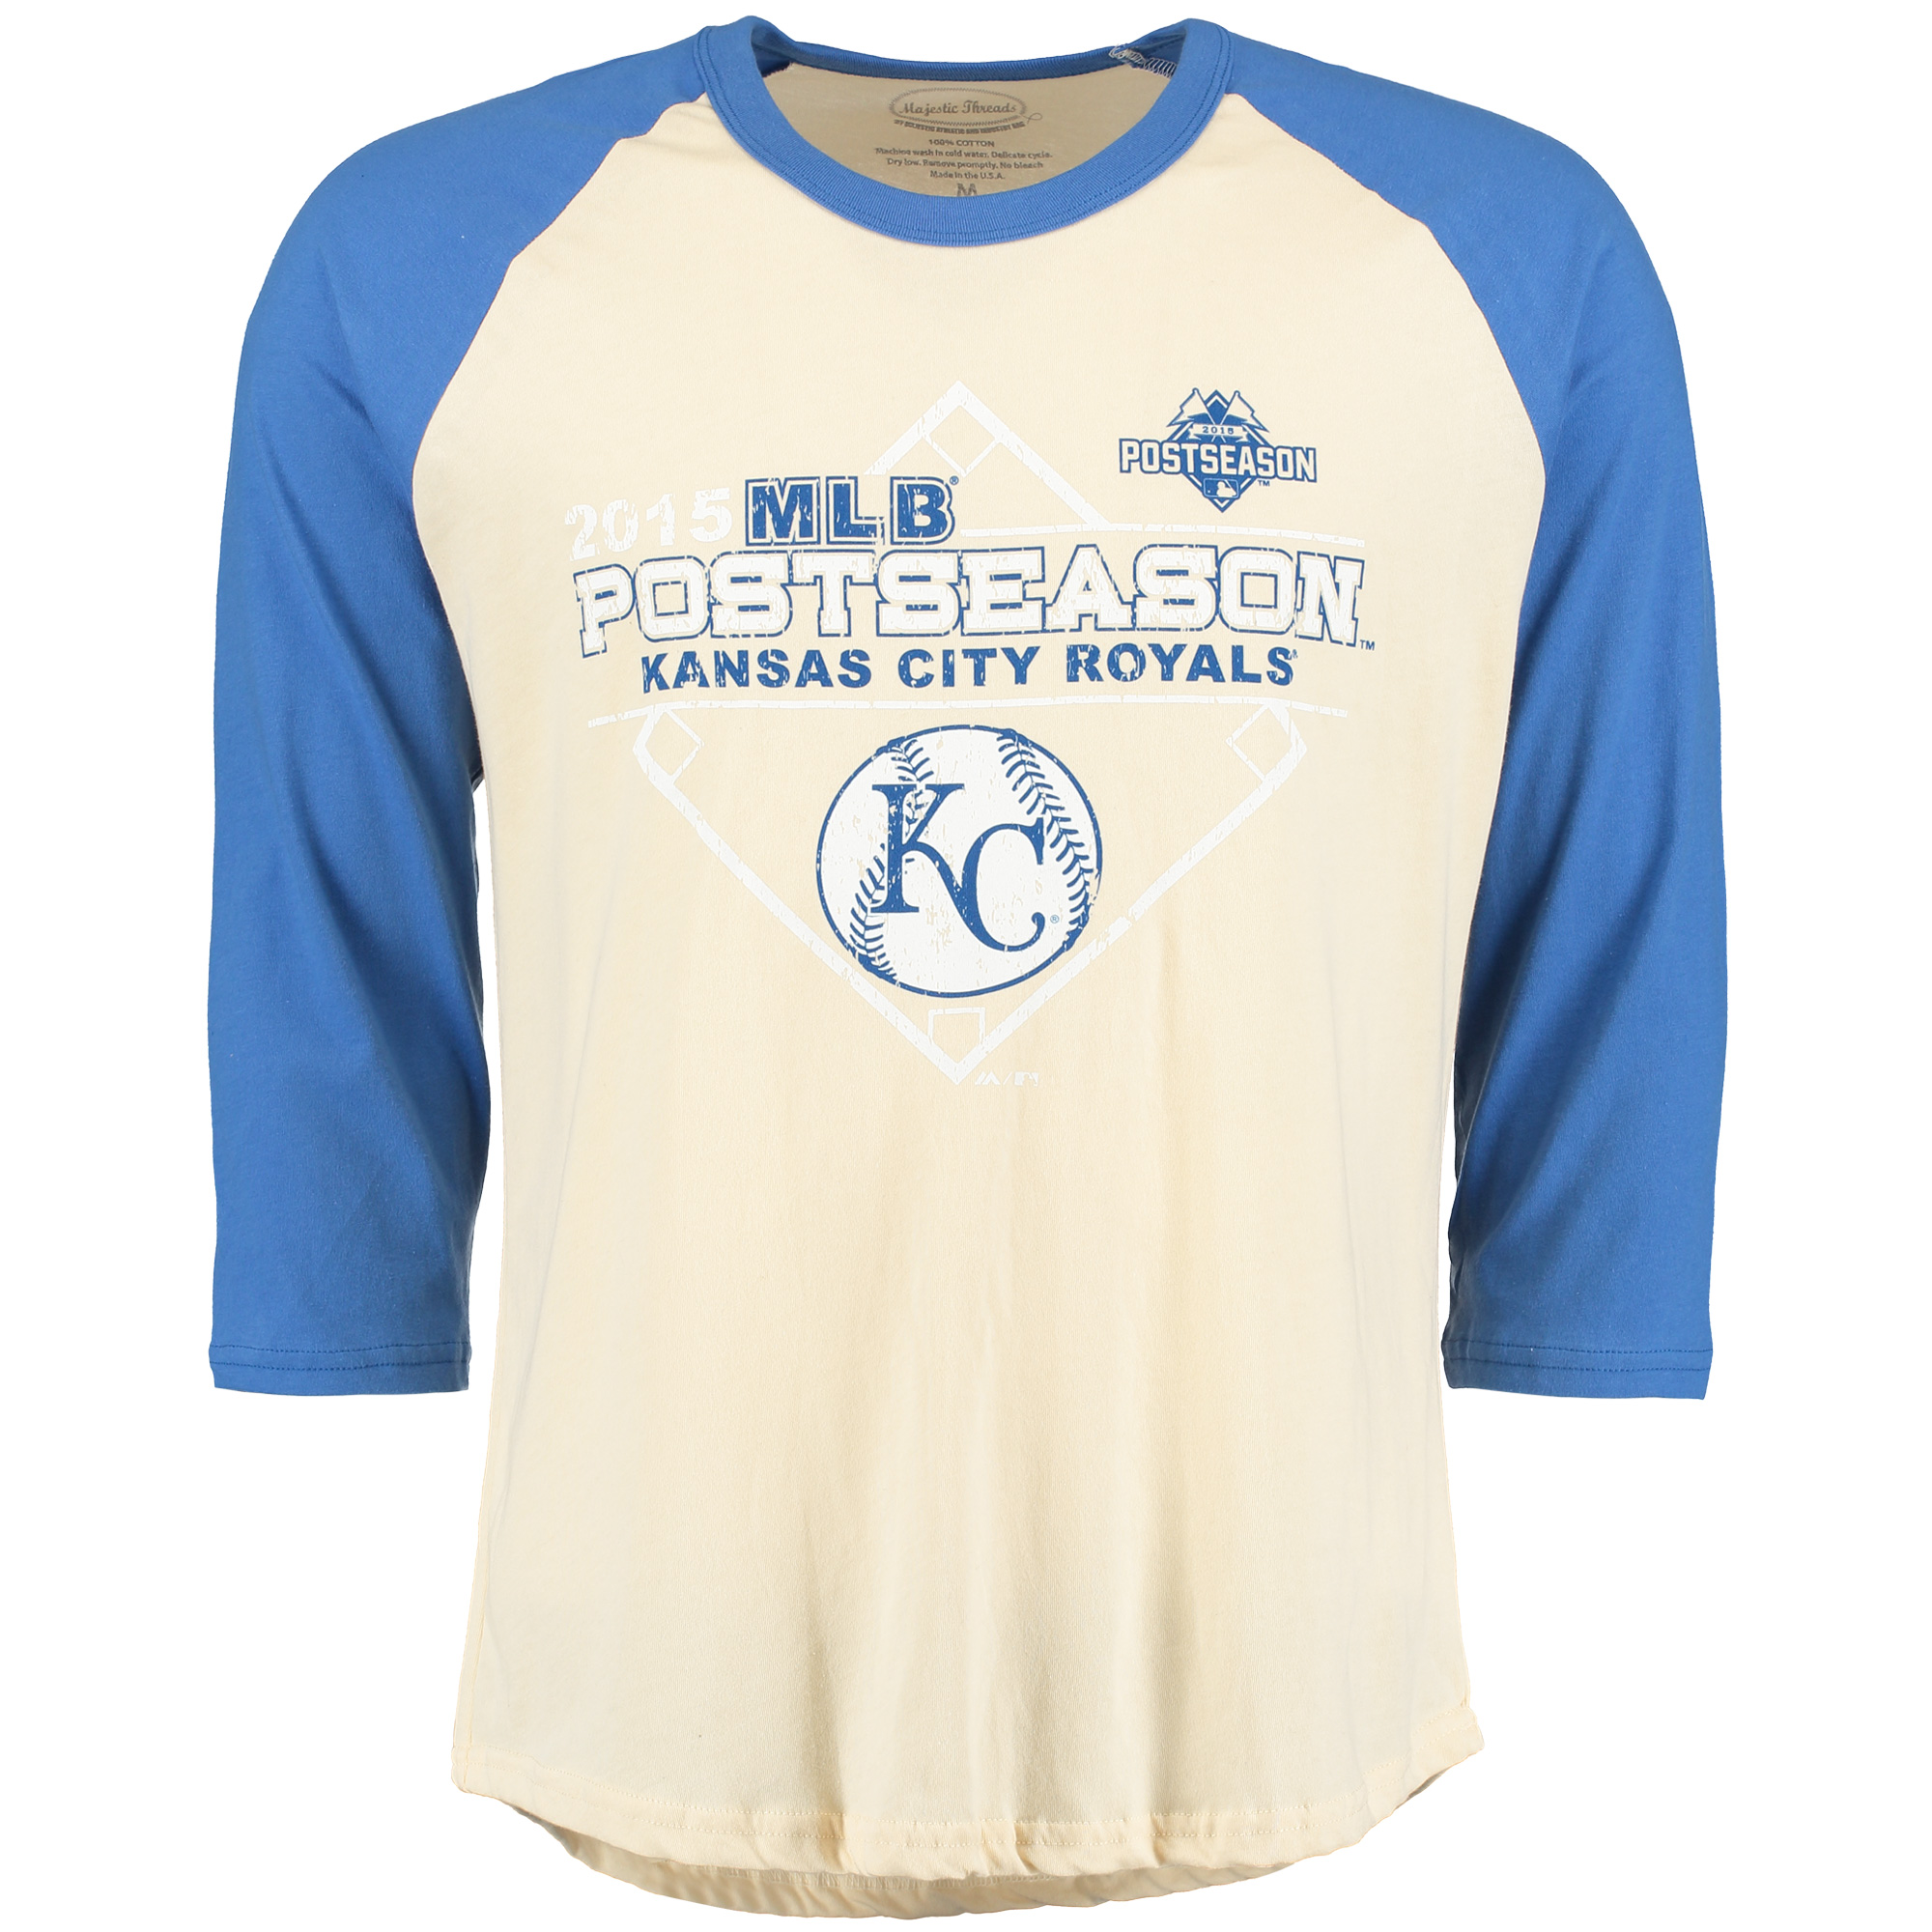 Kansas City Royals Majestic Threads 2015 Postseason Baseball Premium Raglan - Royal